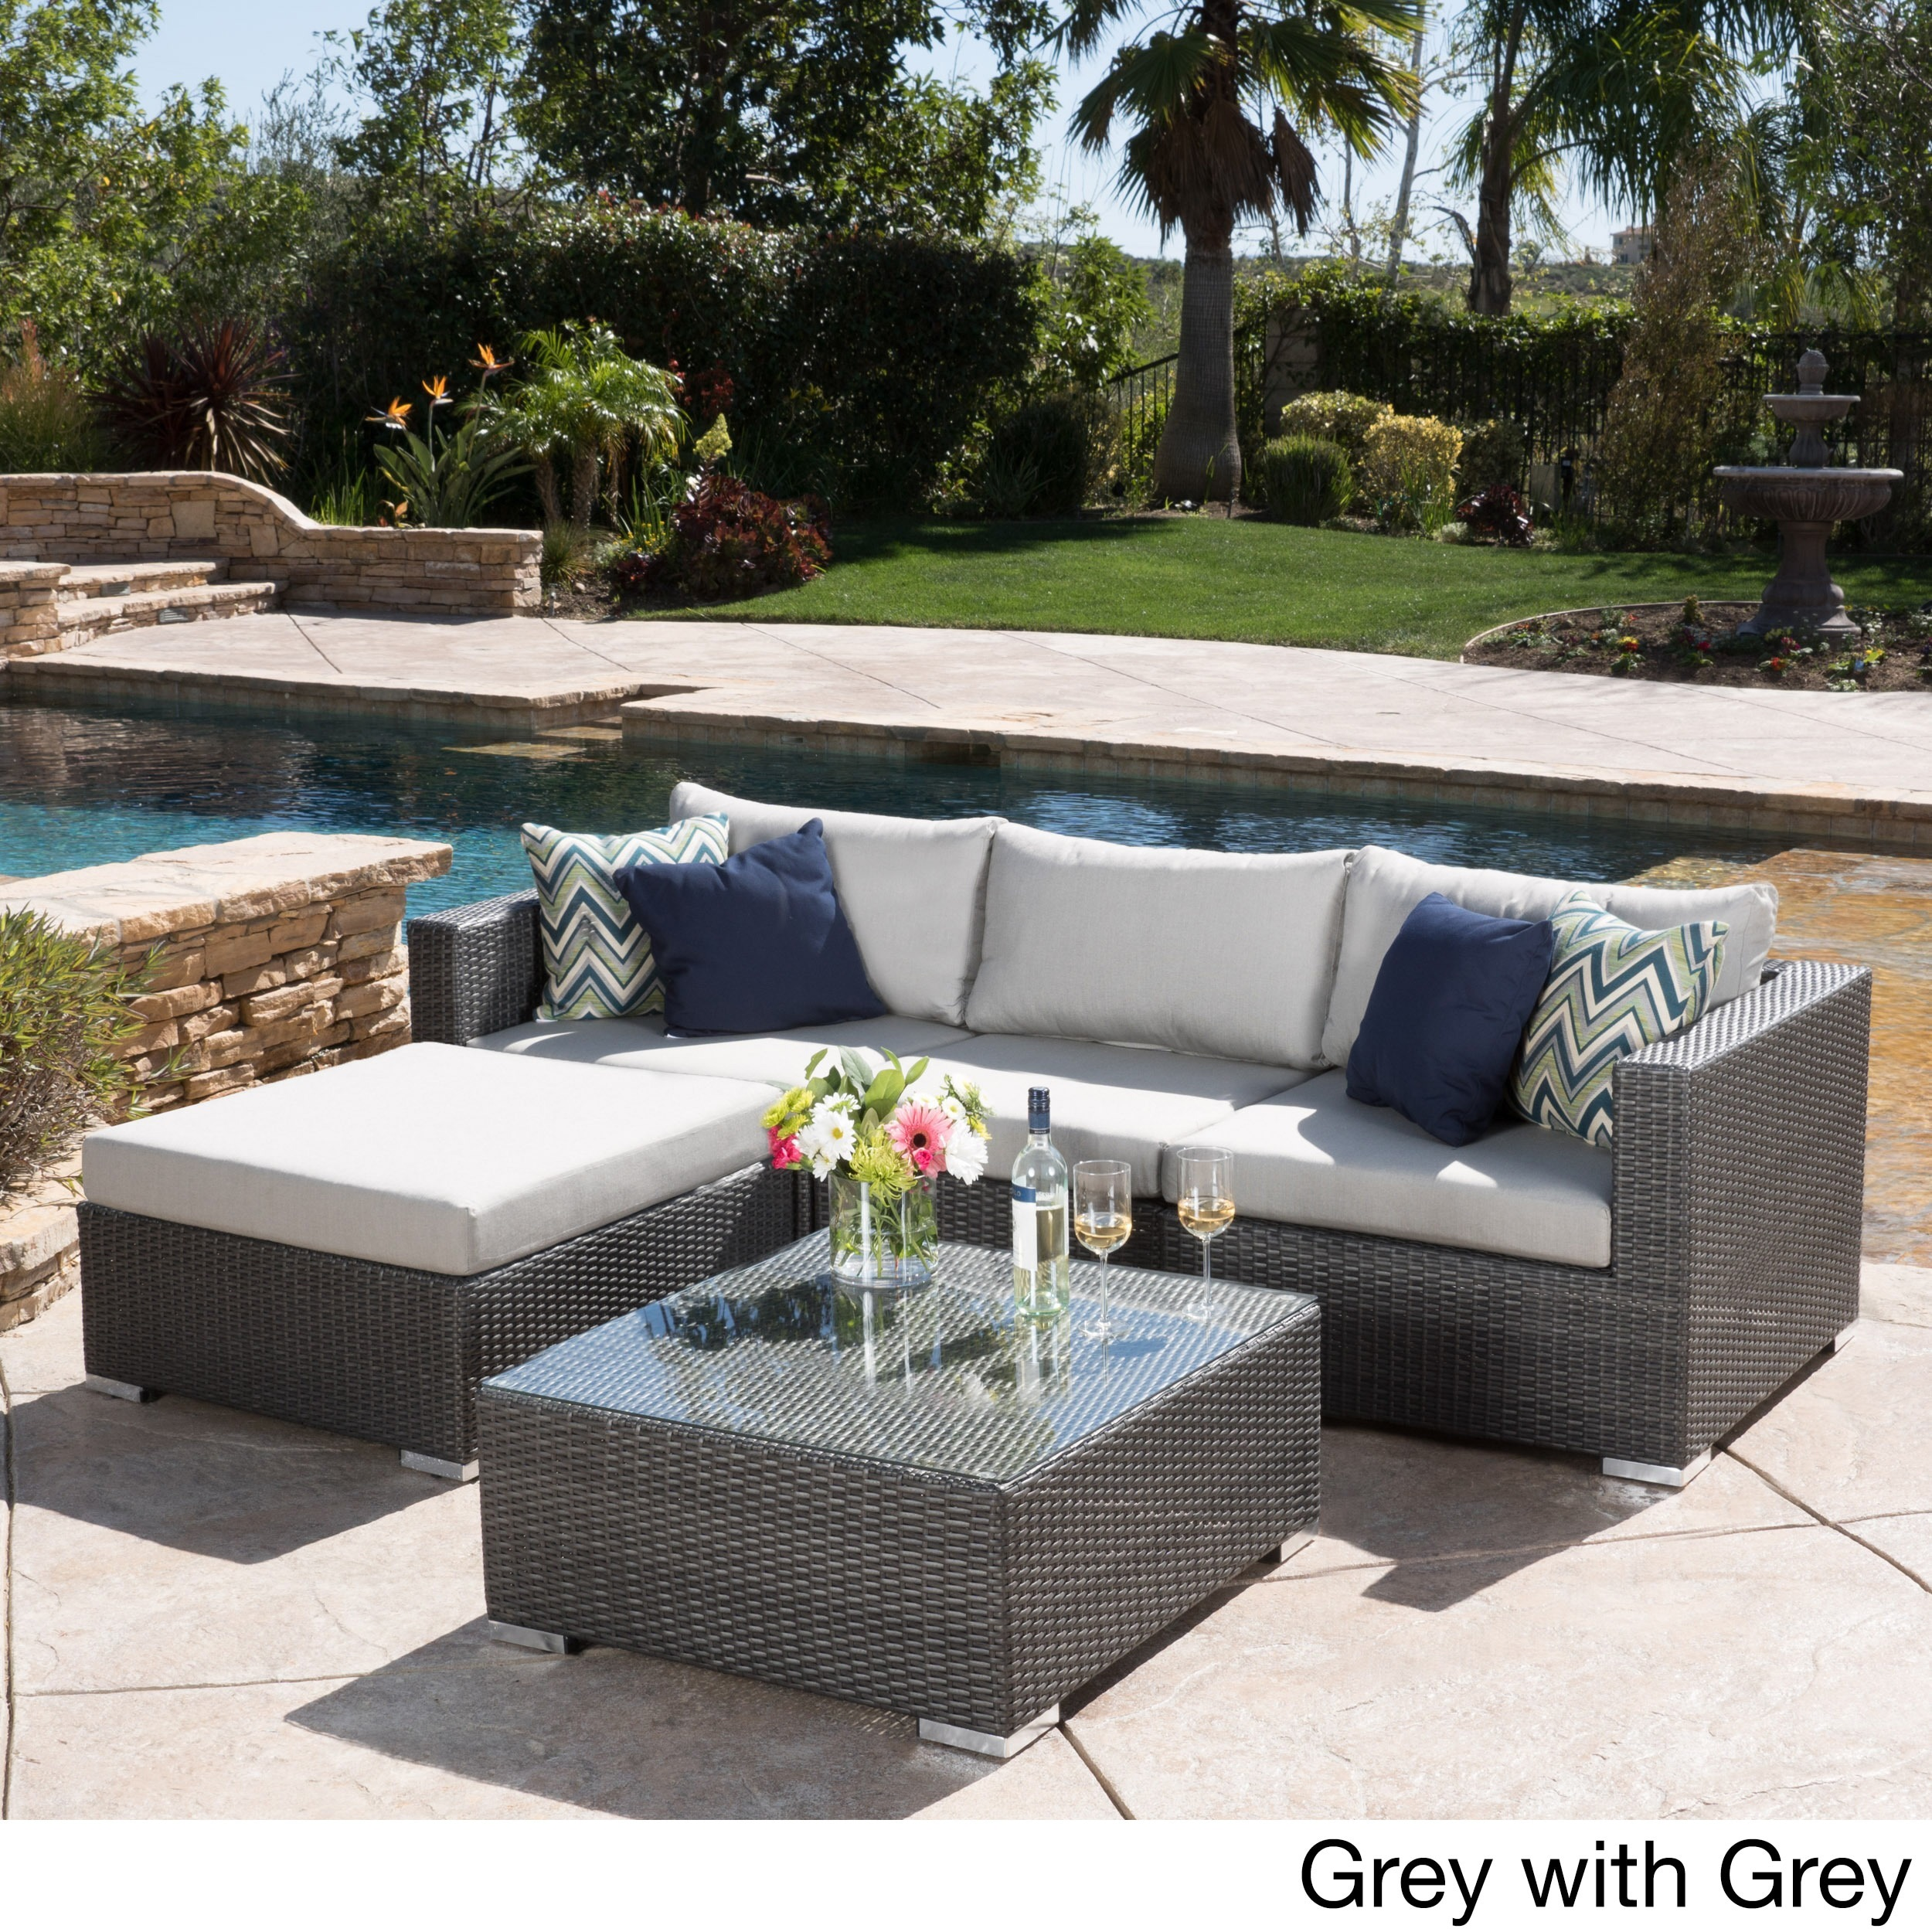 set palermo today free with espresso home garden wicker abbyson sale outdoor patio sectional shipping overstock cushions product grey